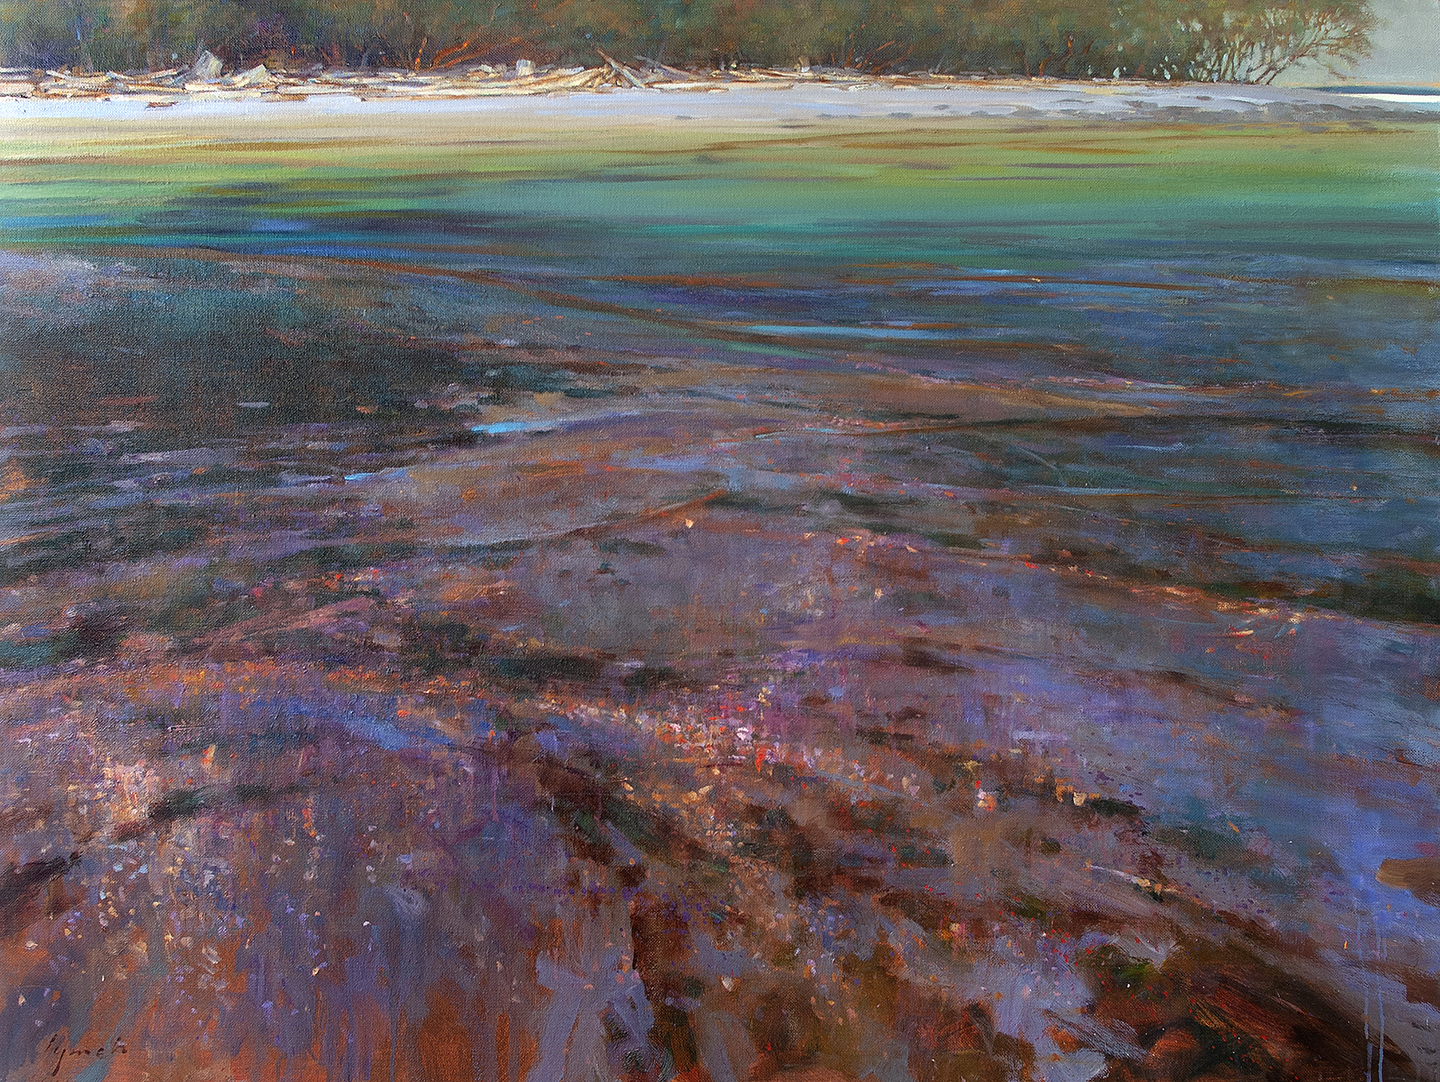 'Sand, Stone and Shells' 36 X 48 in. oil on canvas - The Avenue Gallery